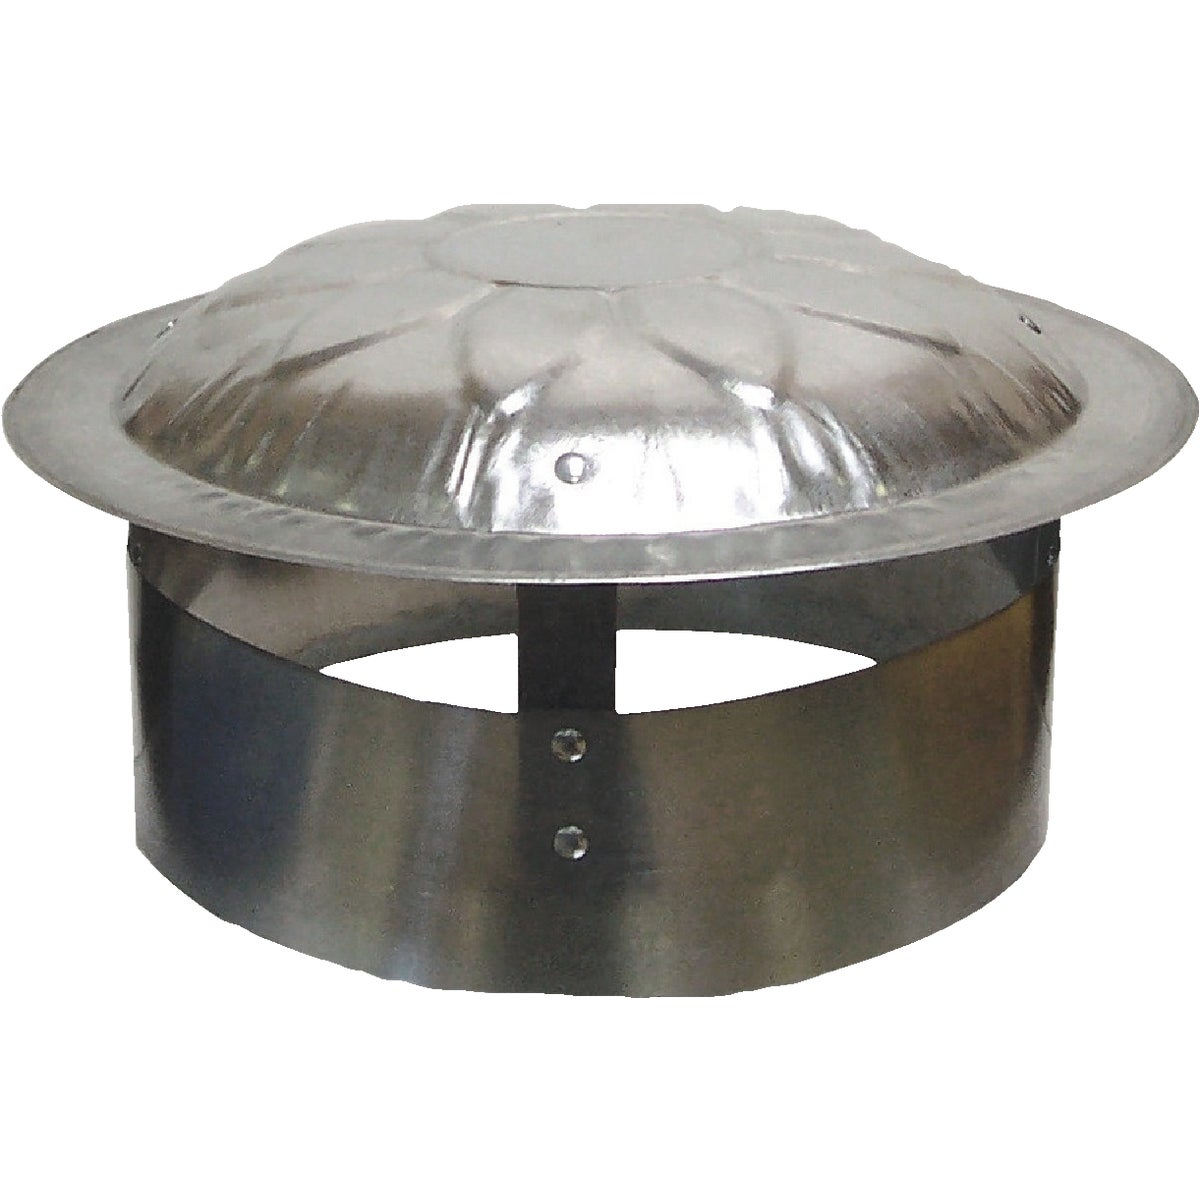 "9"" VENT PIPE CAP - D-289 by S & K Products Co"